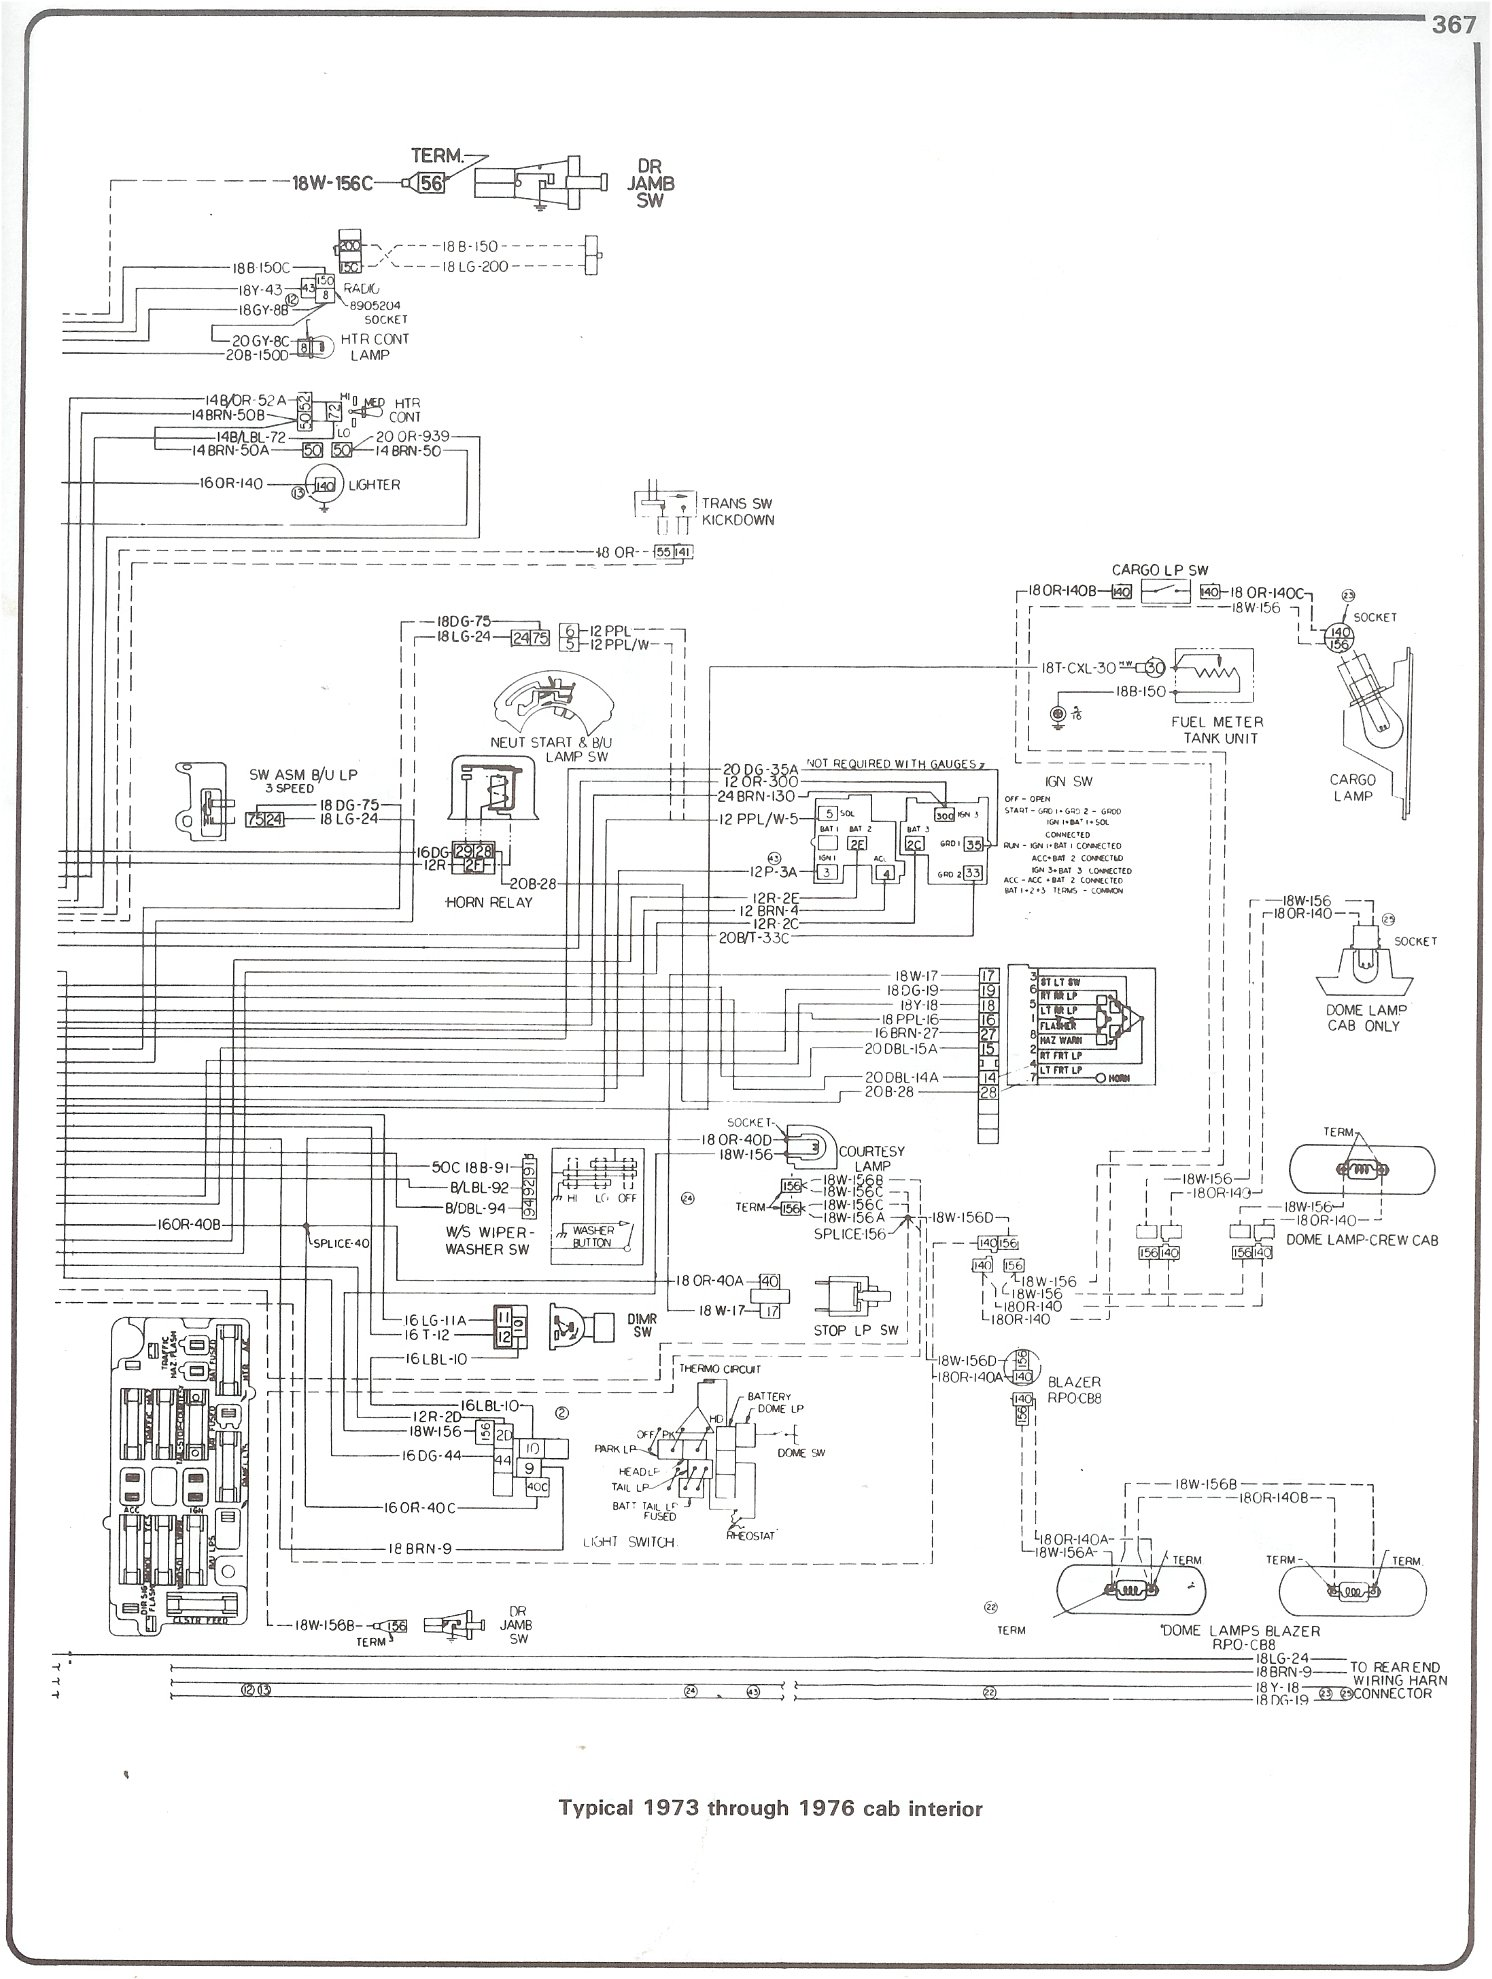 73 76_cab_inter complete 73 87 wiring diagrams Chevy Silverado Wiring Diagram at honlapkeszites.co